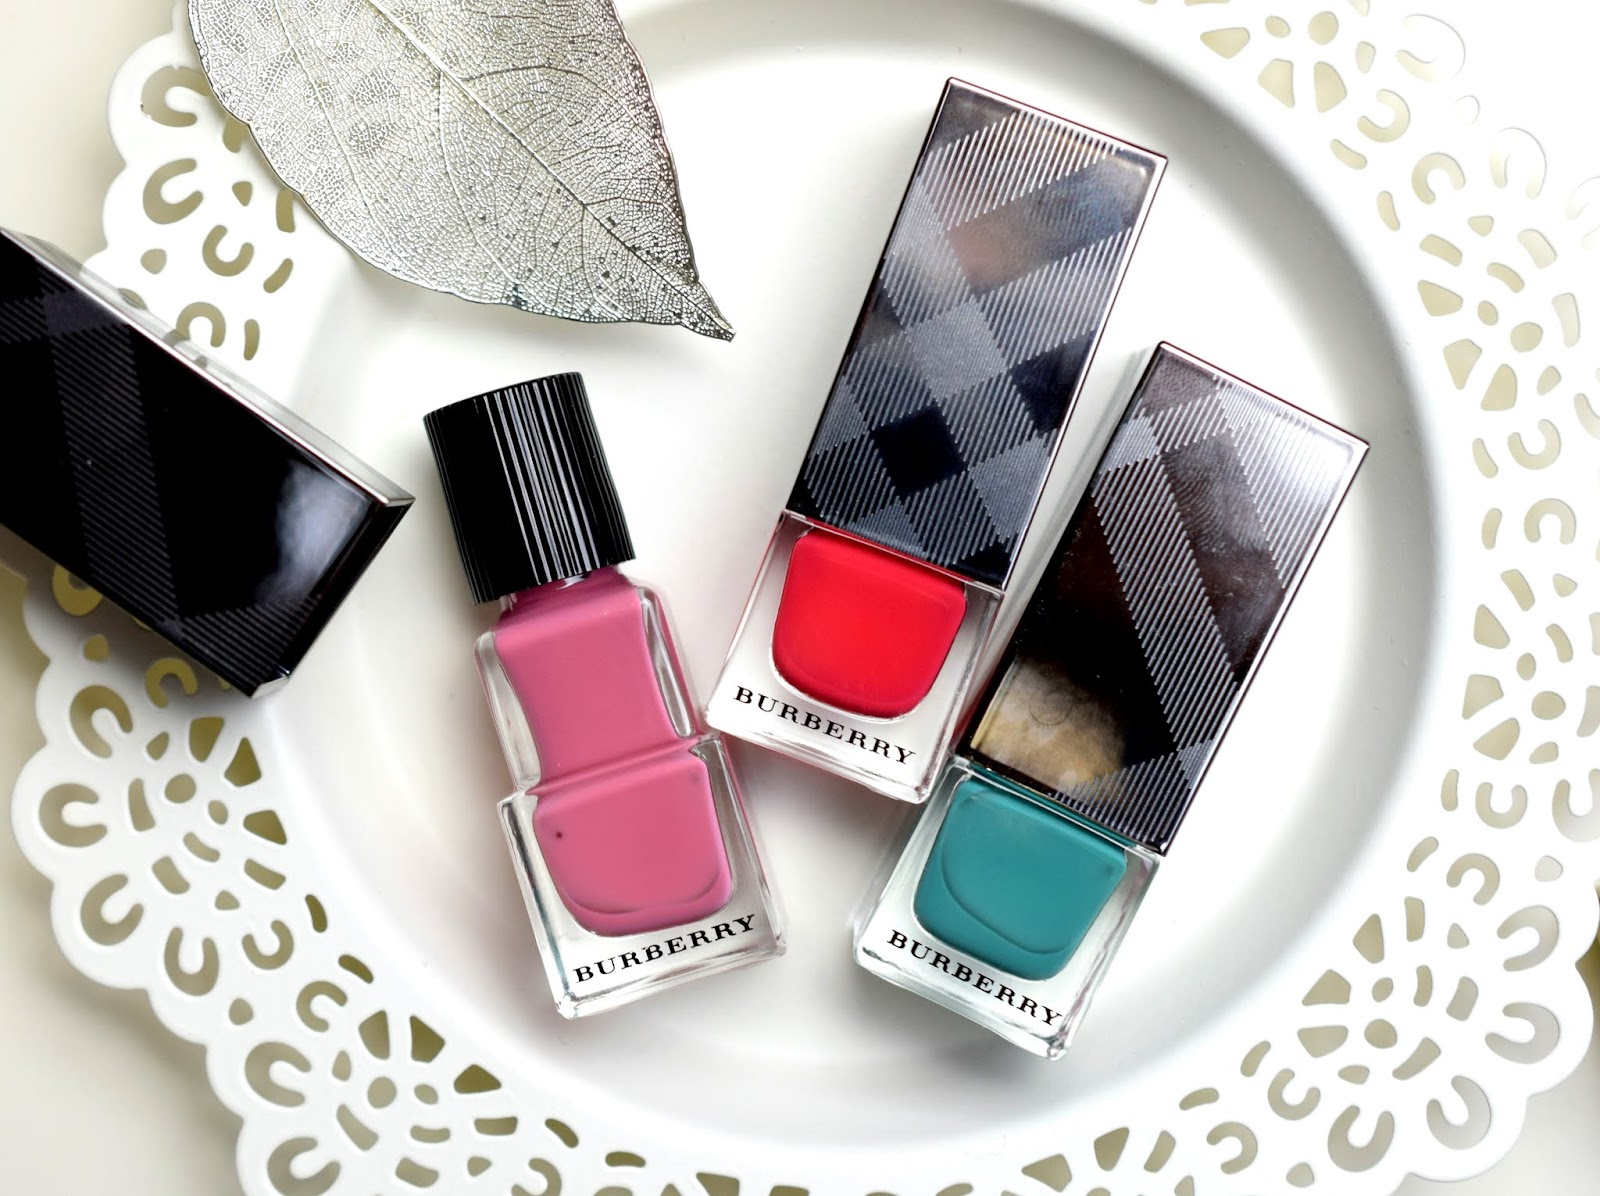 Burberry Spring / Summer 2015 Make-Up Collection - Nail Polish Limited Edition